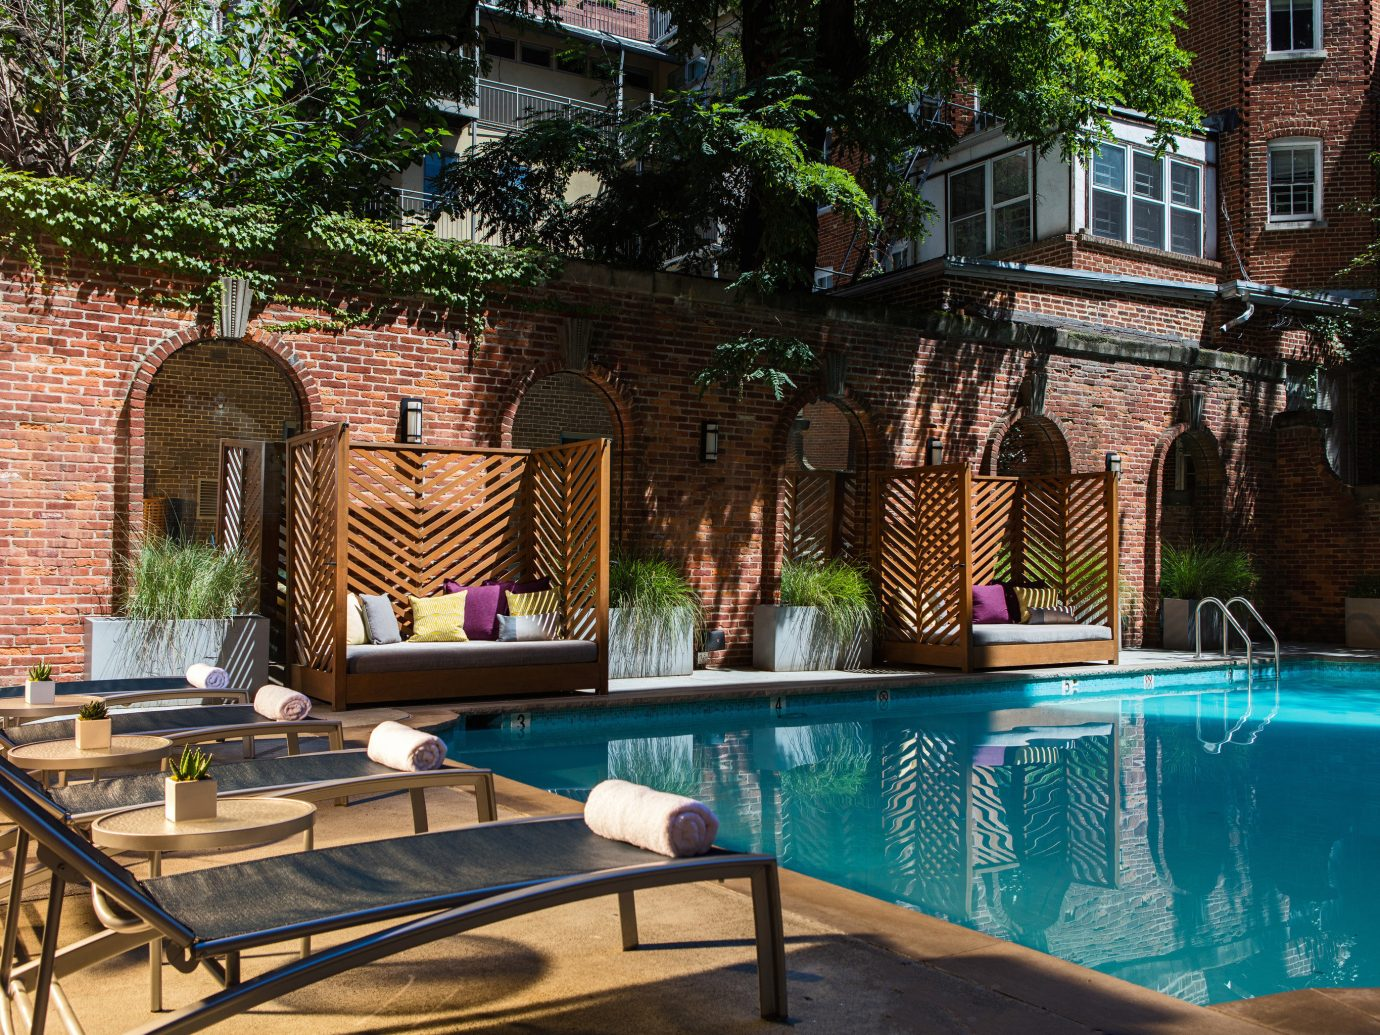 Hotels swimming pool outdoor property chair estate backyard Courtyard home Villa mansion outdoor structure yard